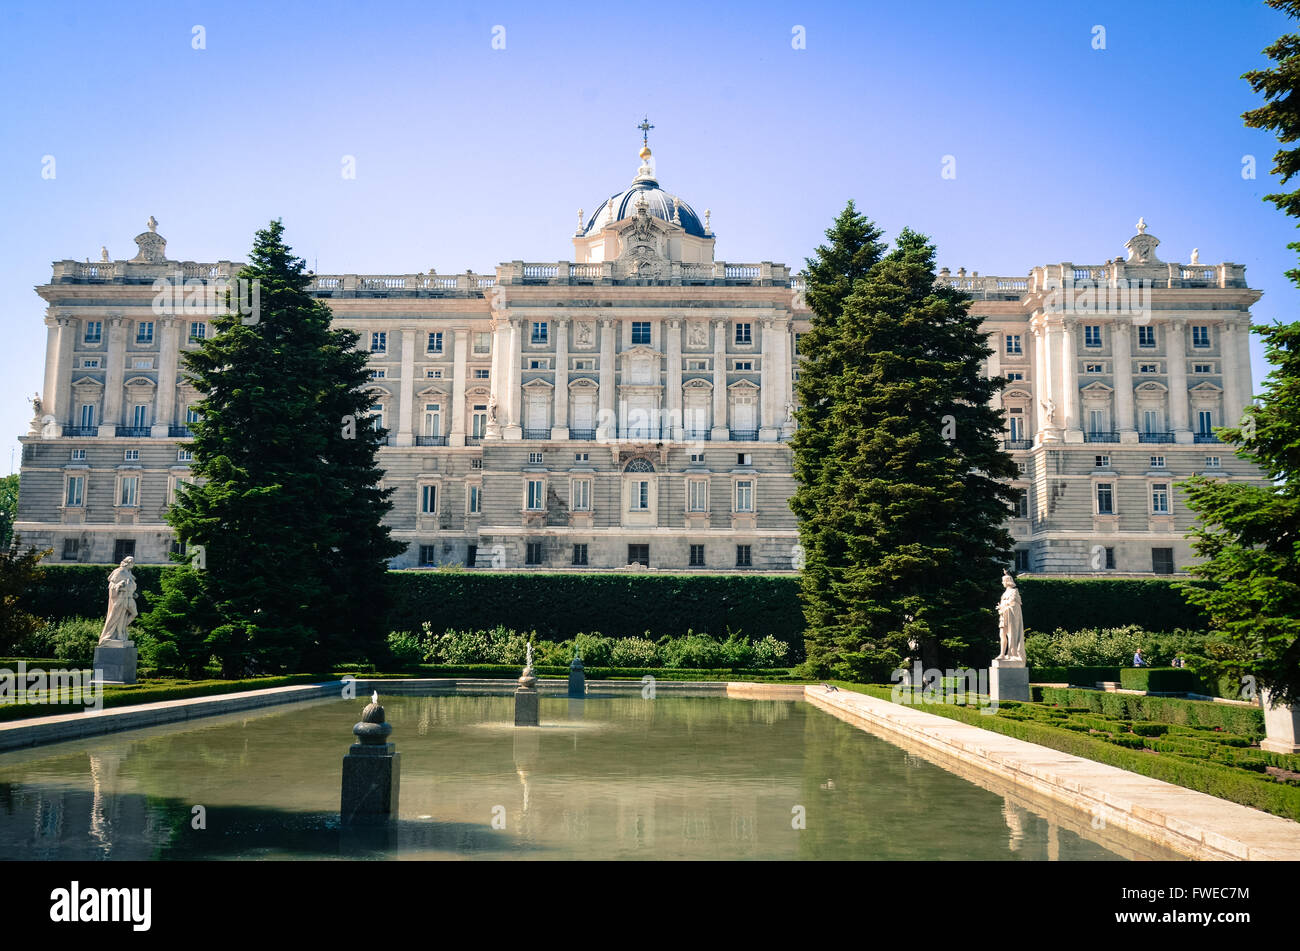 The Palacio Real de Madrid is the official residence of the Spanish Royal Family at the city of Madrid, but is only - Stock Image